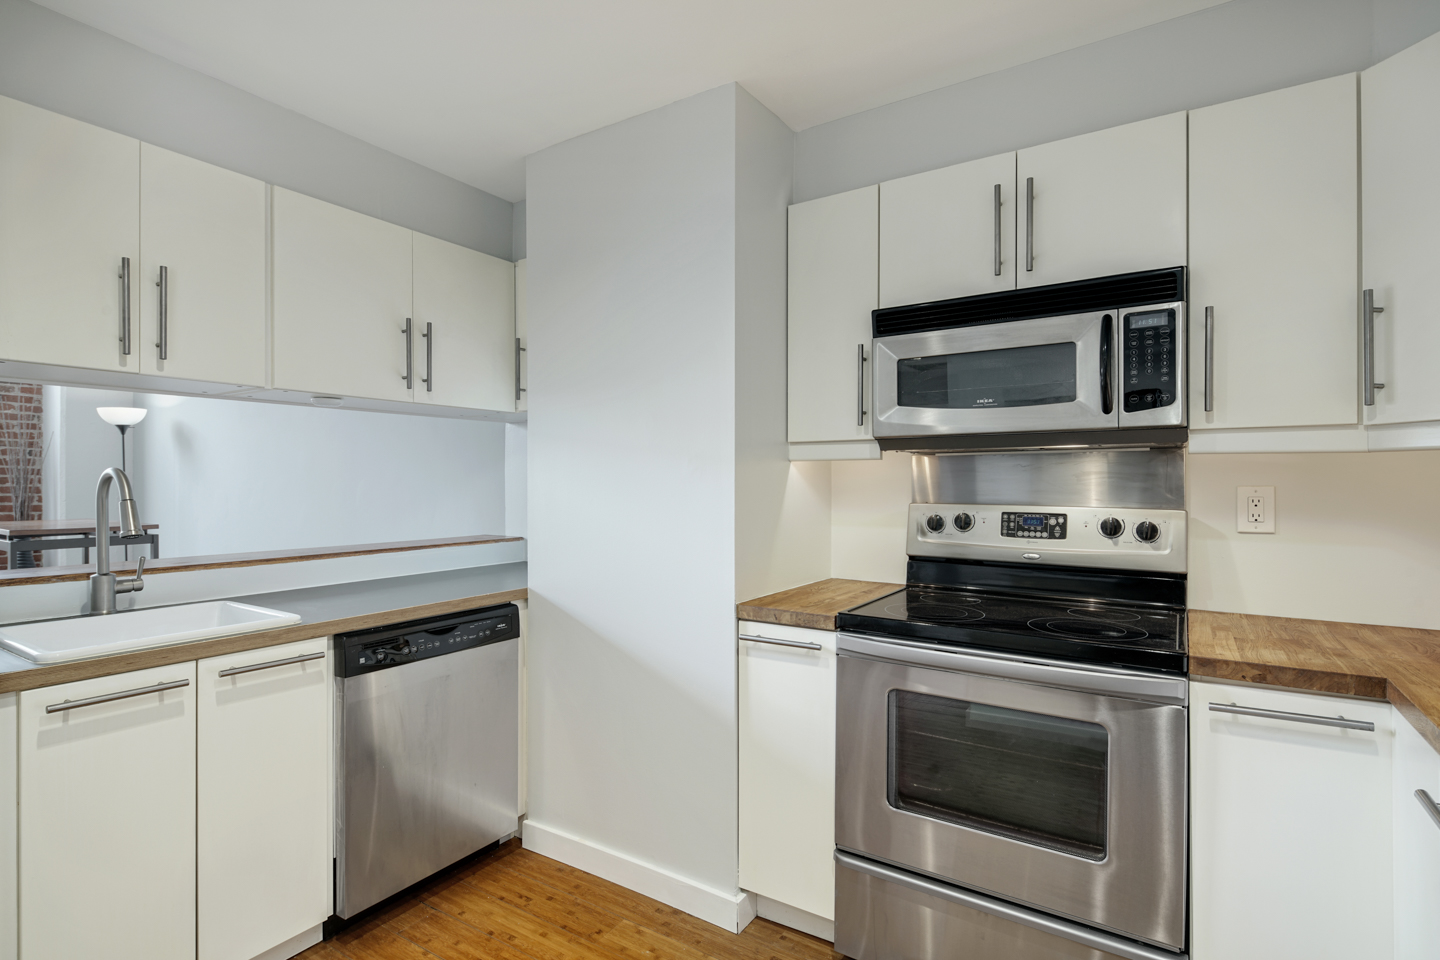 315 New St Unit 410 reshoot-MLS-8.jpg